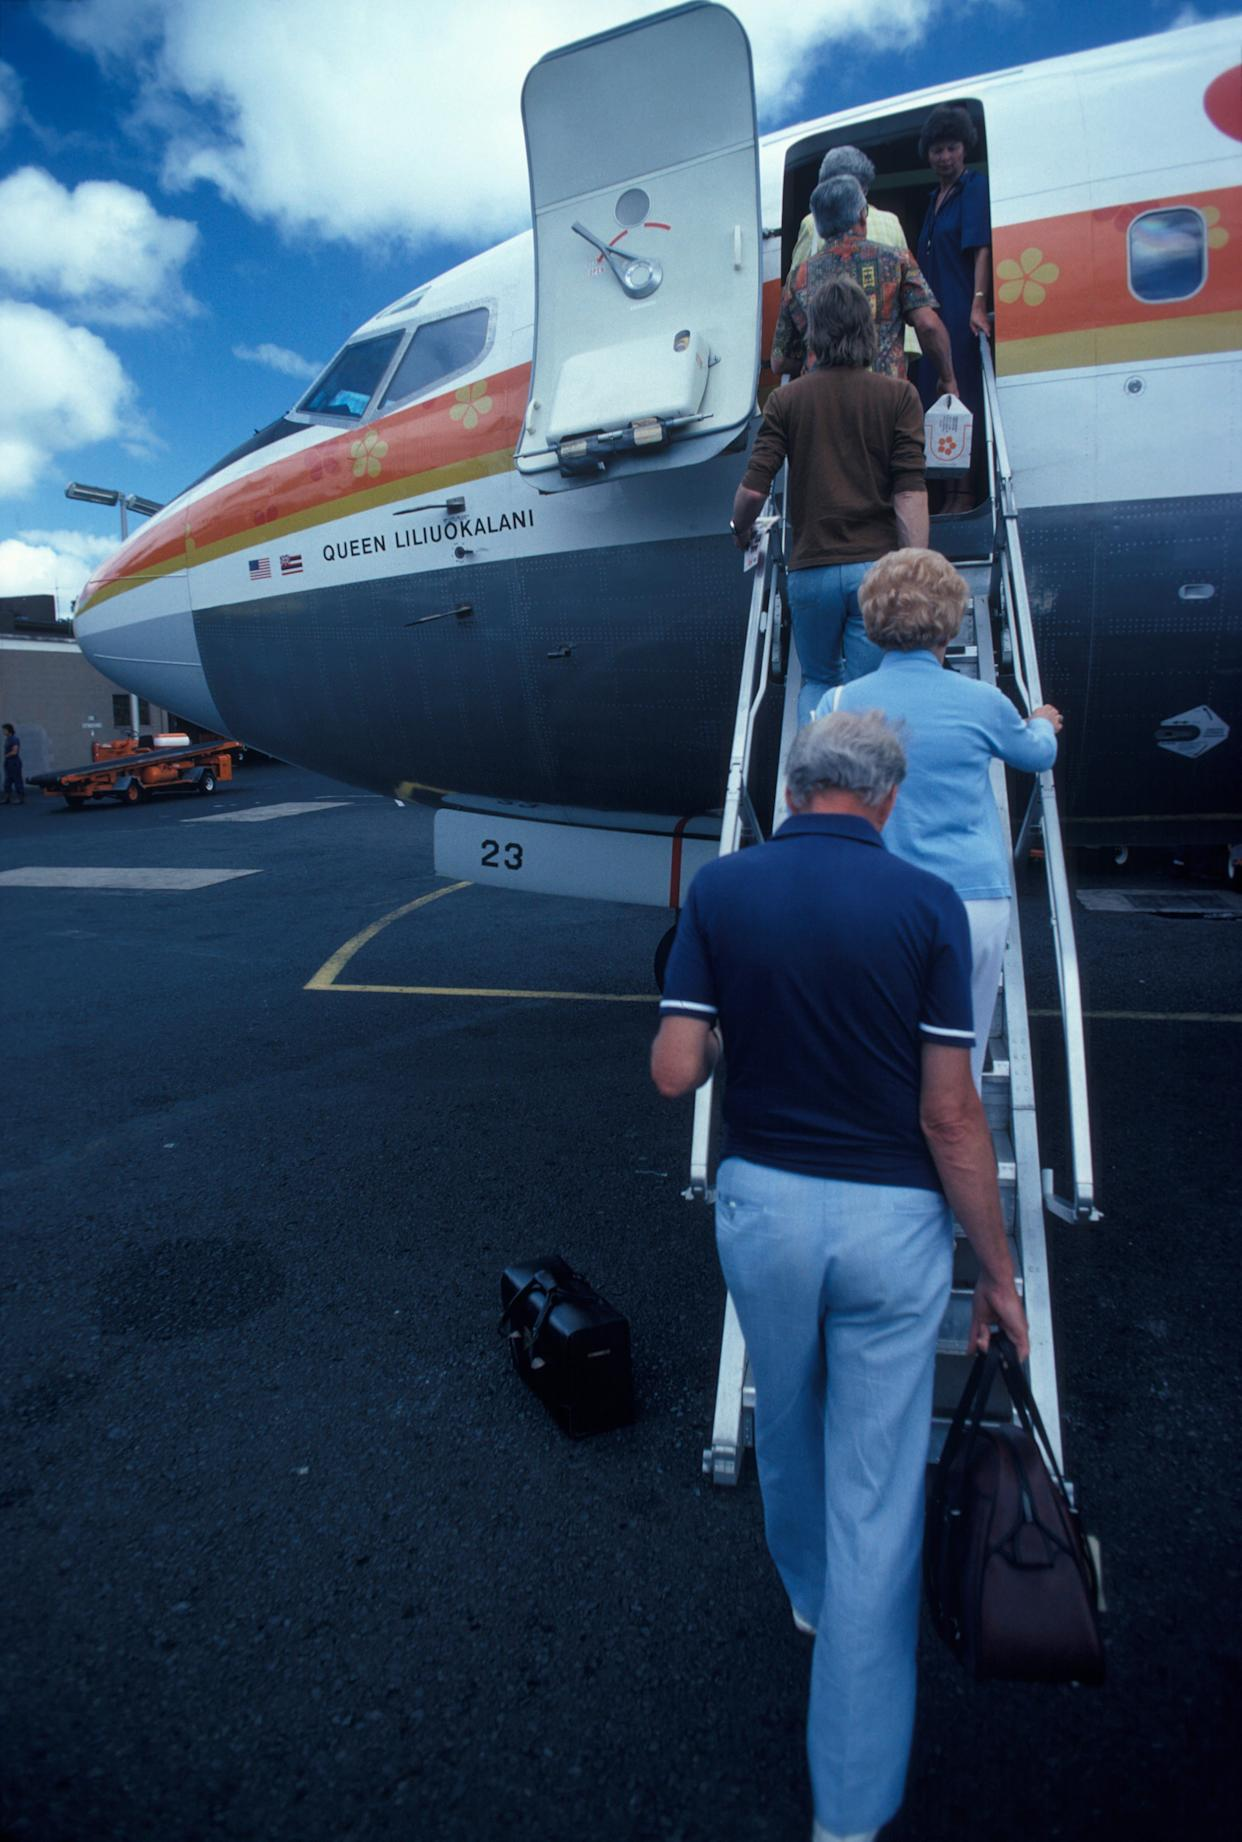 Passengers board an Aloha Airlines plane named after Hawaiian monarch 'Queen Liliuokalani' at Honolulu airport in Honolulu, Hawaii on Jan. 2, 1980.